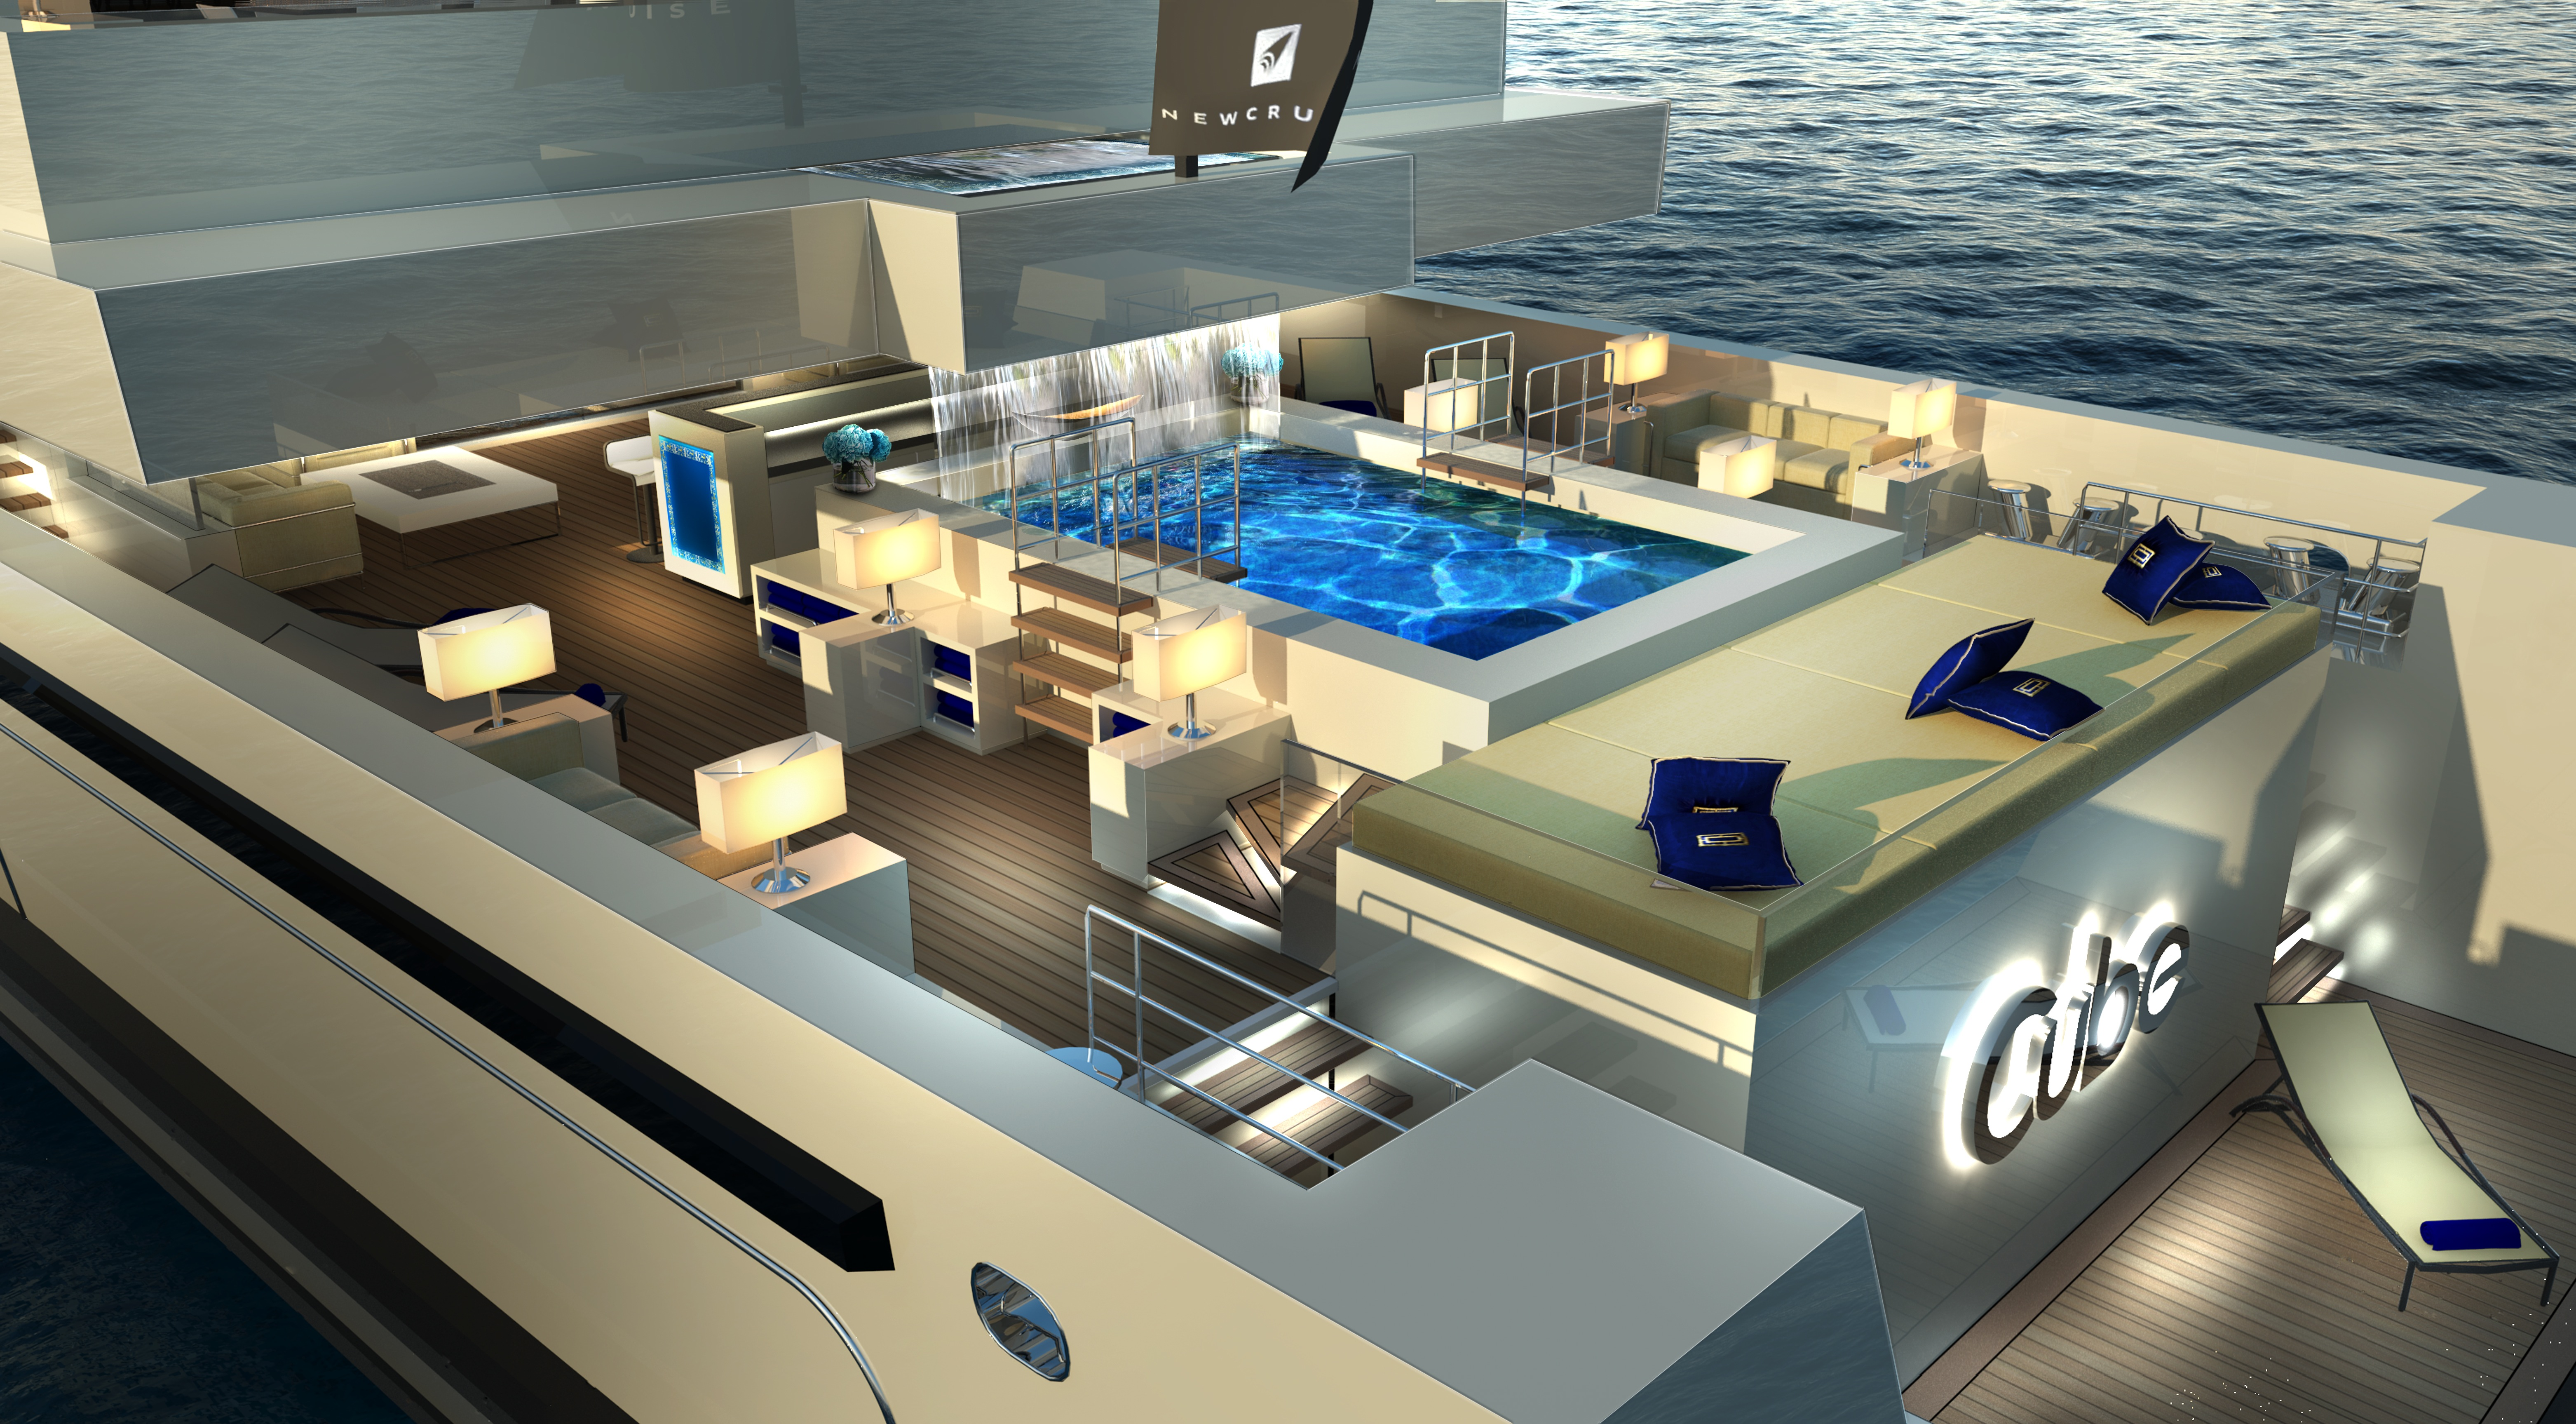 Exterior Spaces Aboard Luxury Yacht CUBE Designed By Newcruise Rendeting Courtesy Of